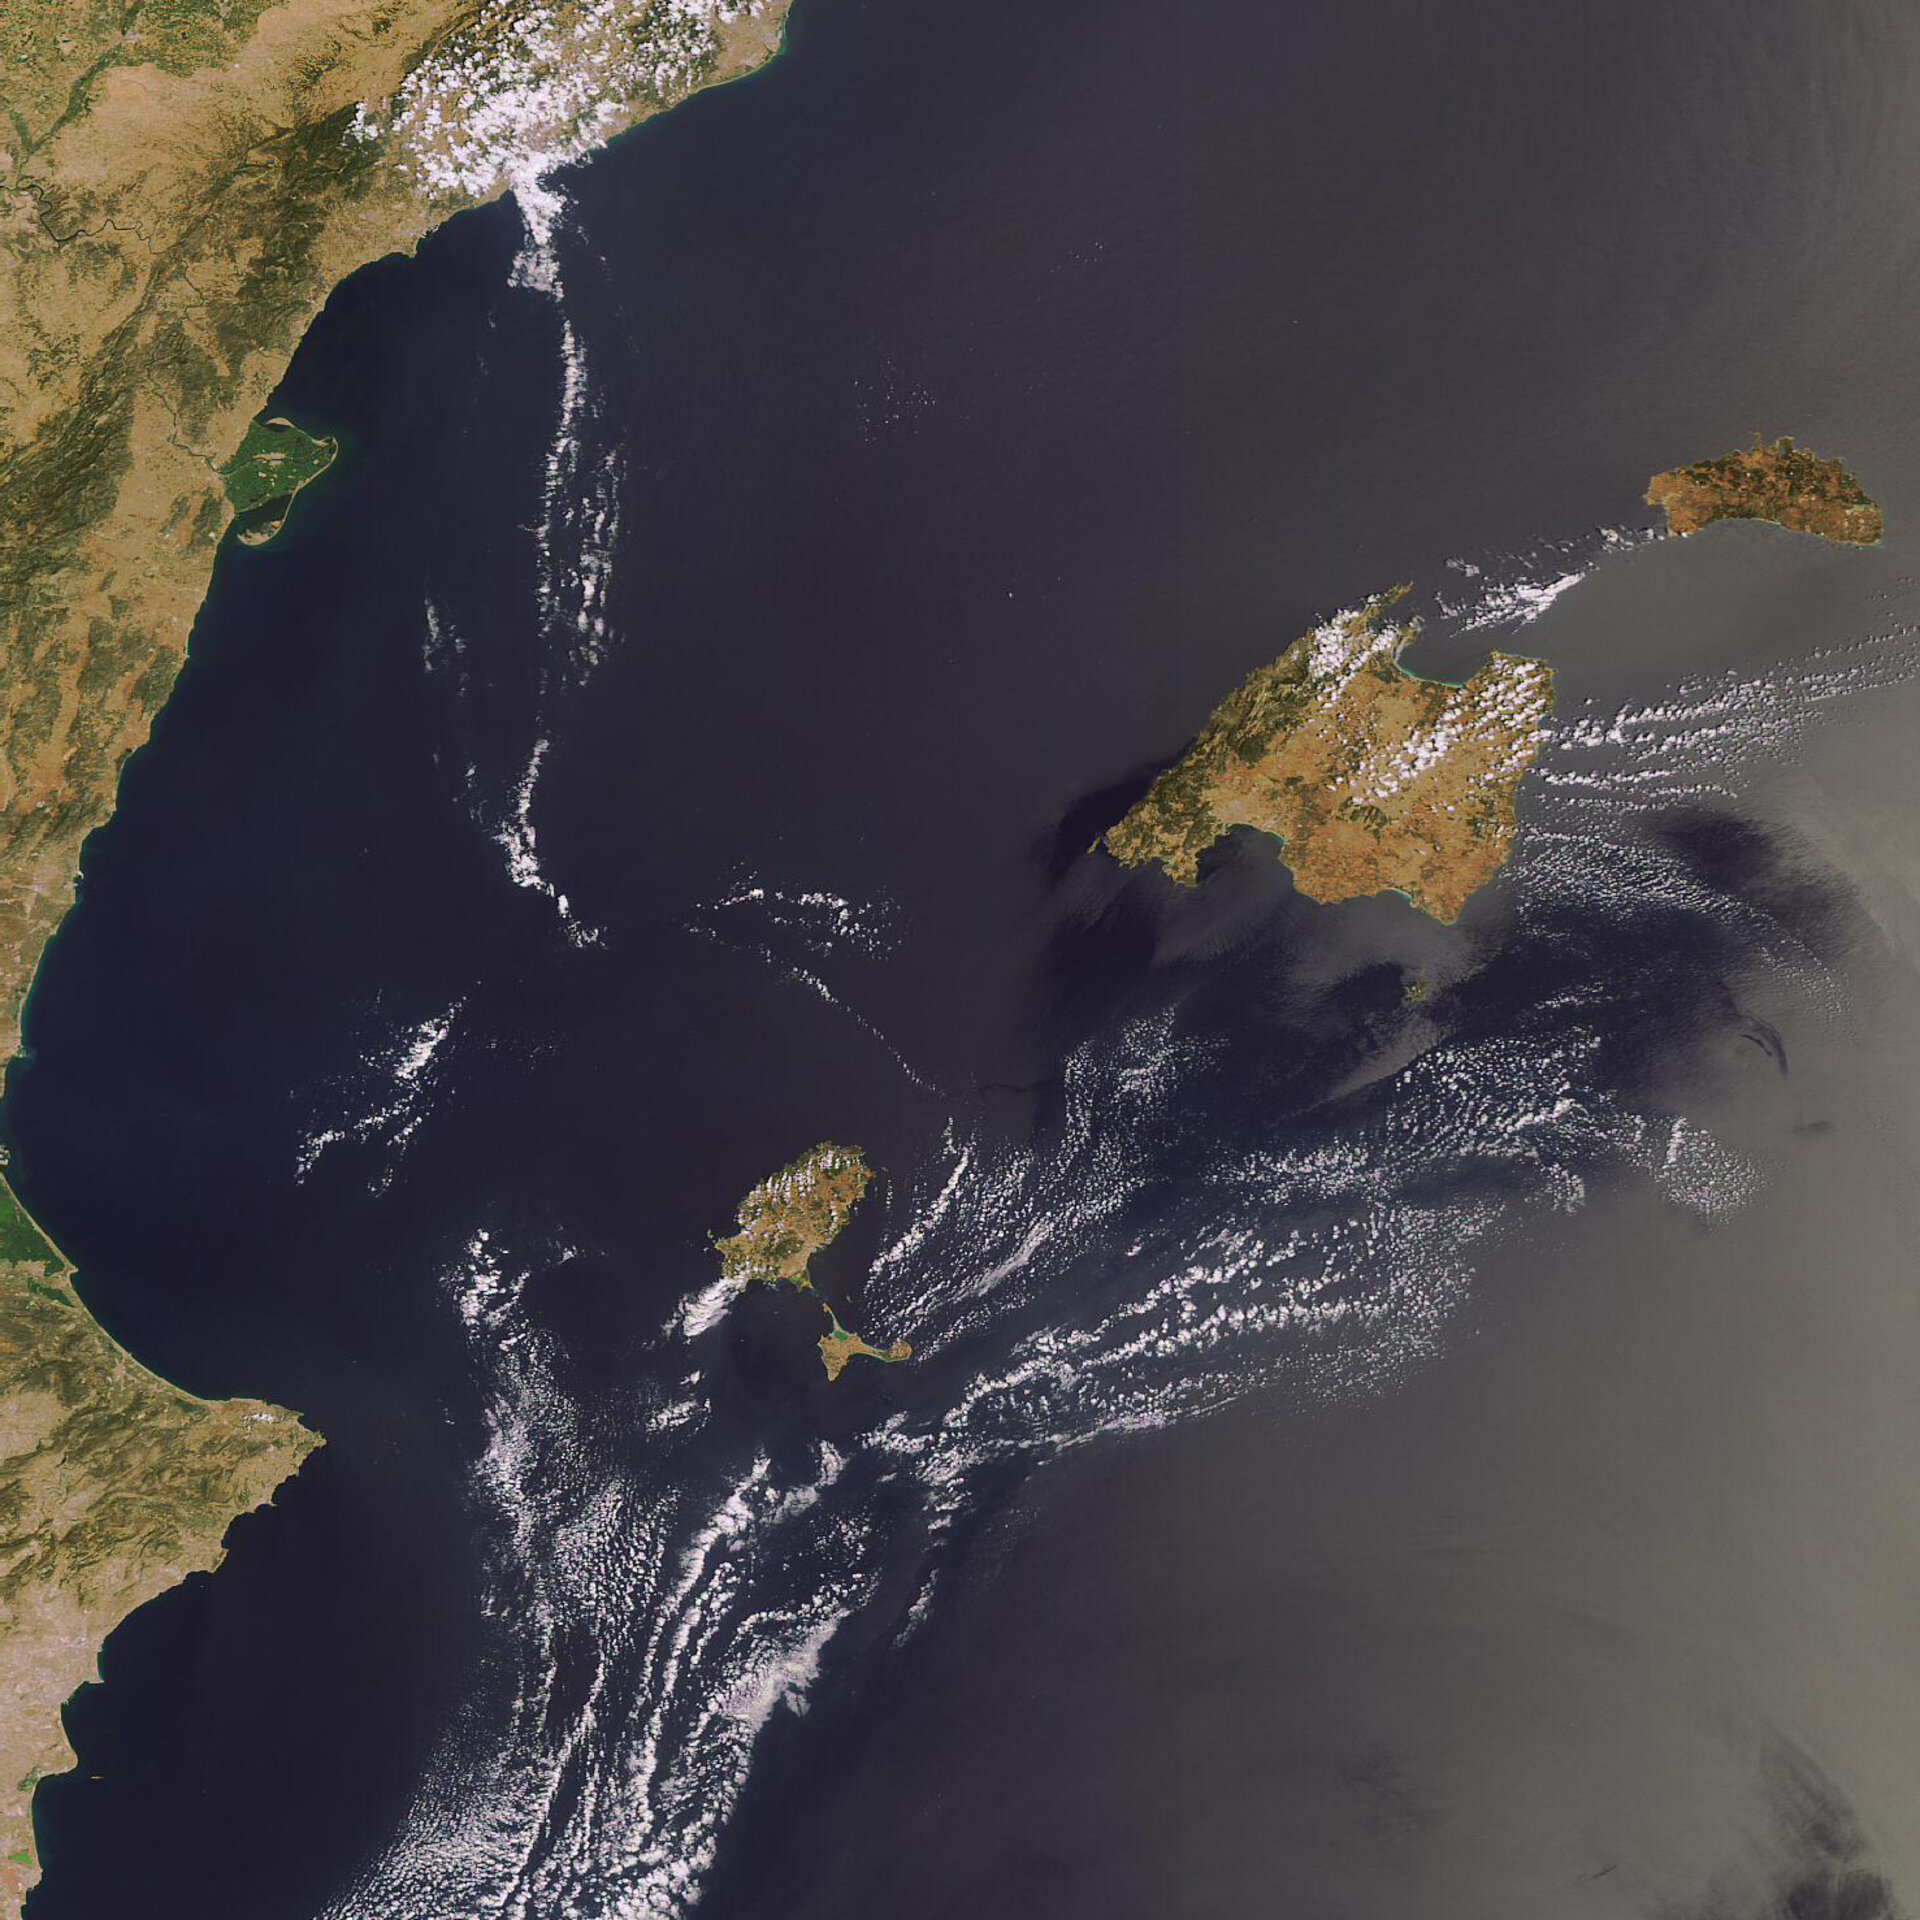 The Balearic Islands as seen by Envisat